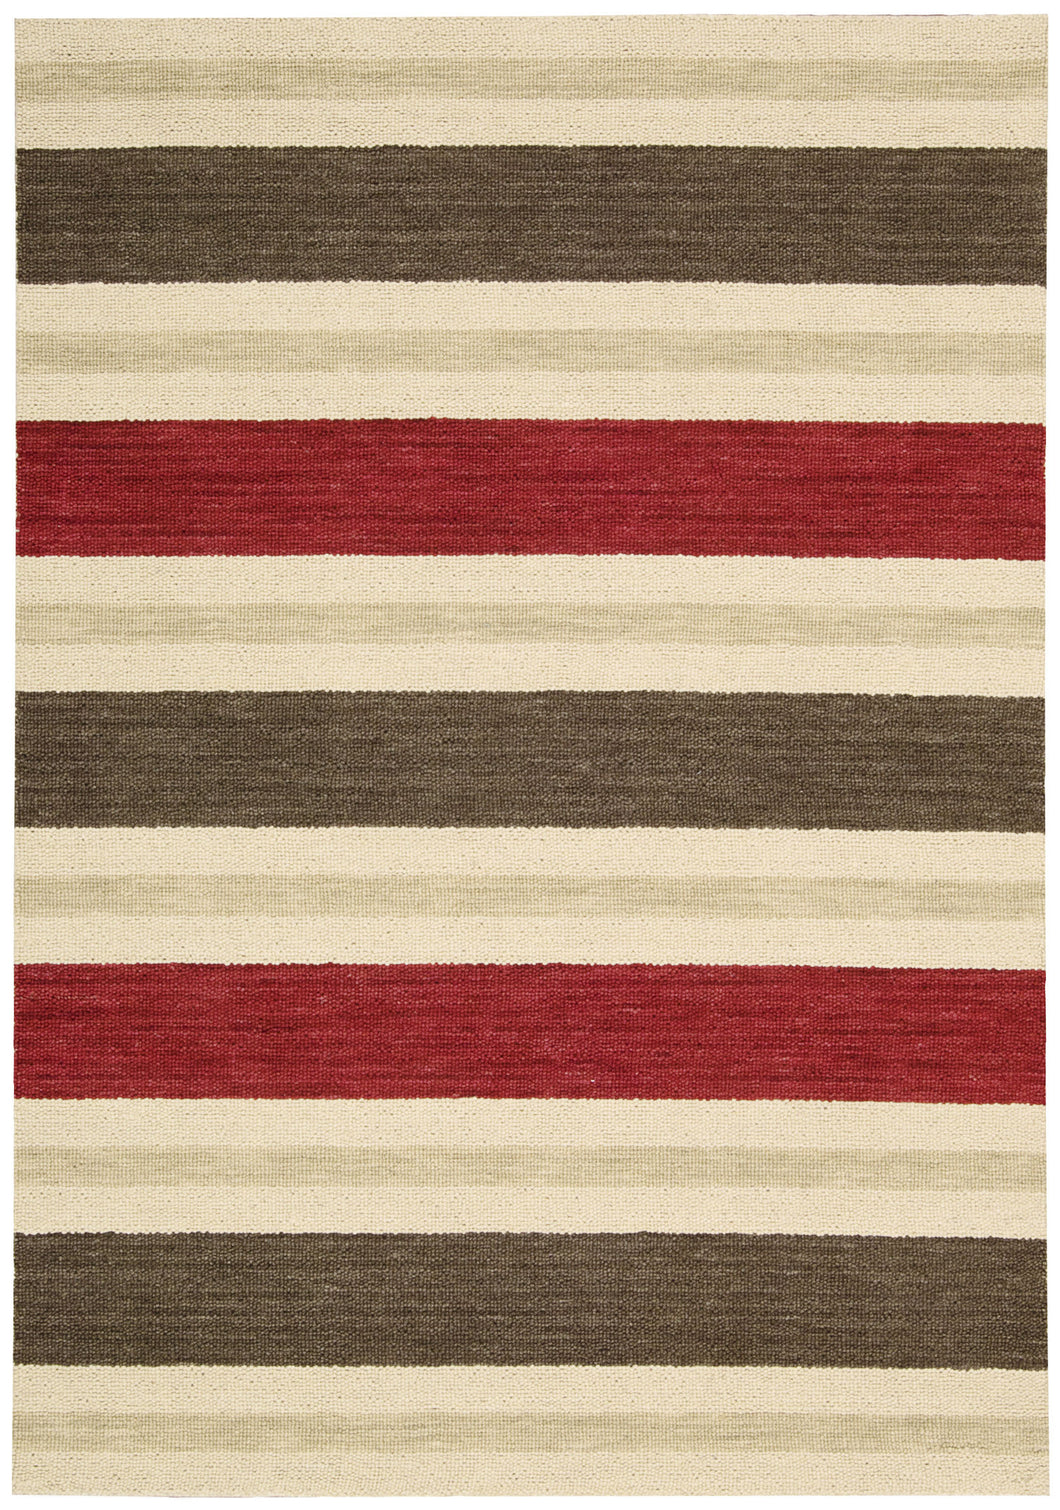 Barclay Butera Oxford Savannah  Area Rug By Nourison OXFD3 SAVAN (Rectangle) | BOGO USA